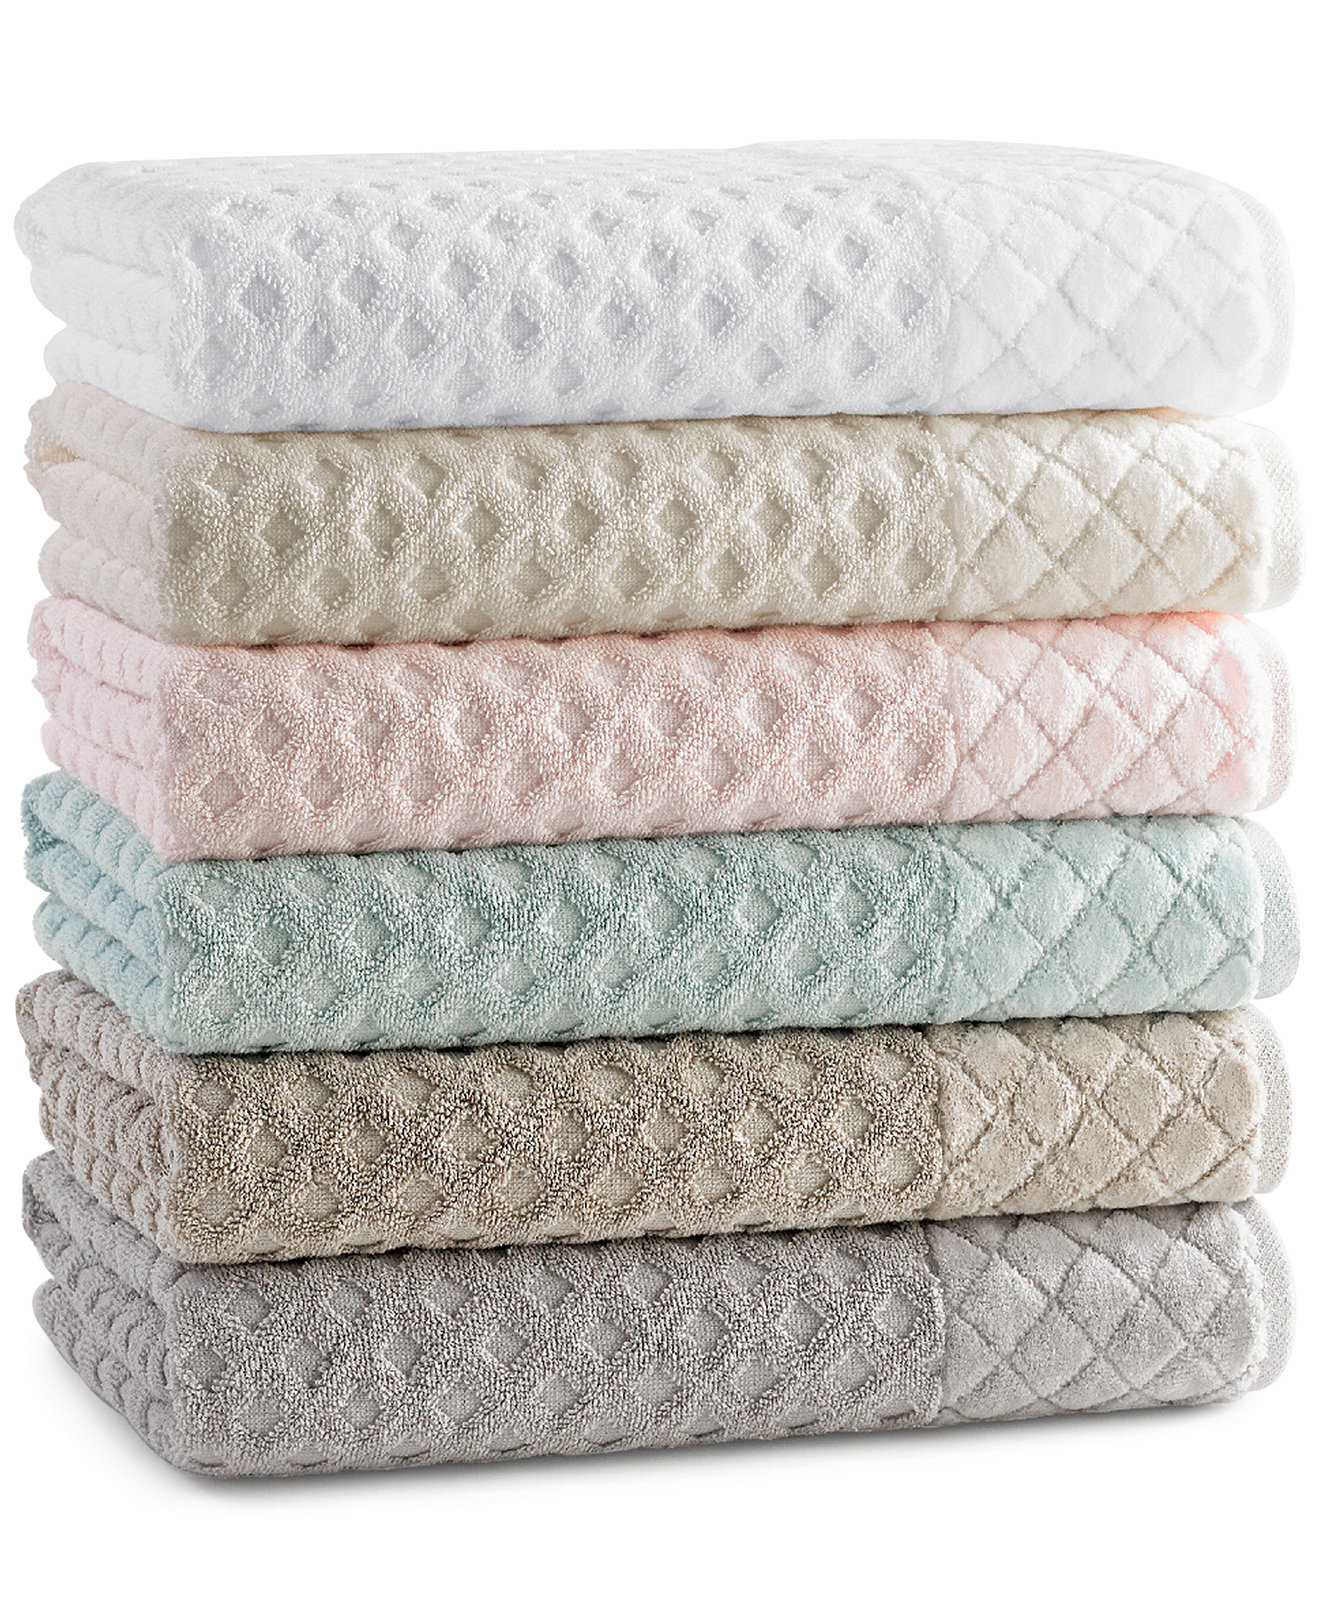 bathroom:Turkish Towels Bed Bath Beyond Bathroom Towels Creative Decoration Stunning Turkish Bath